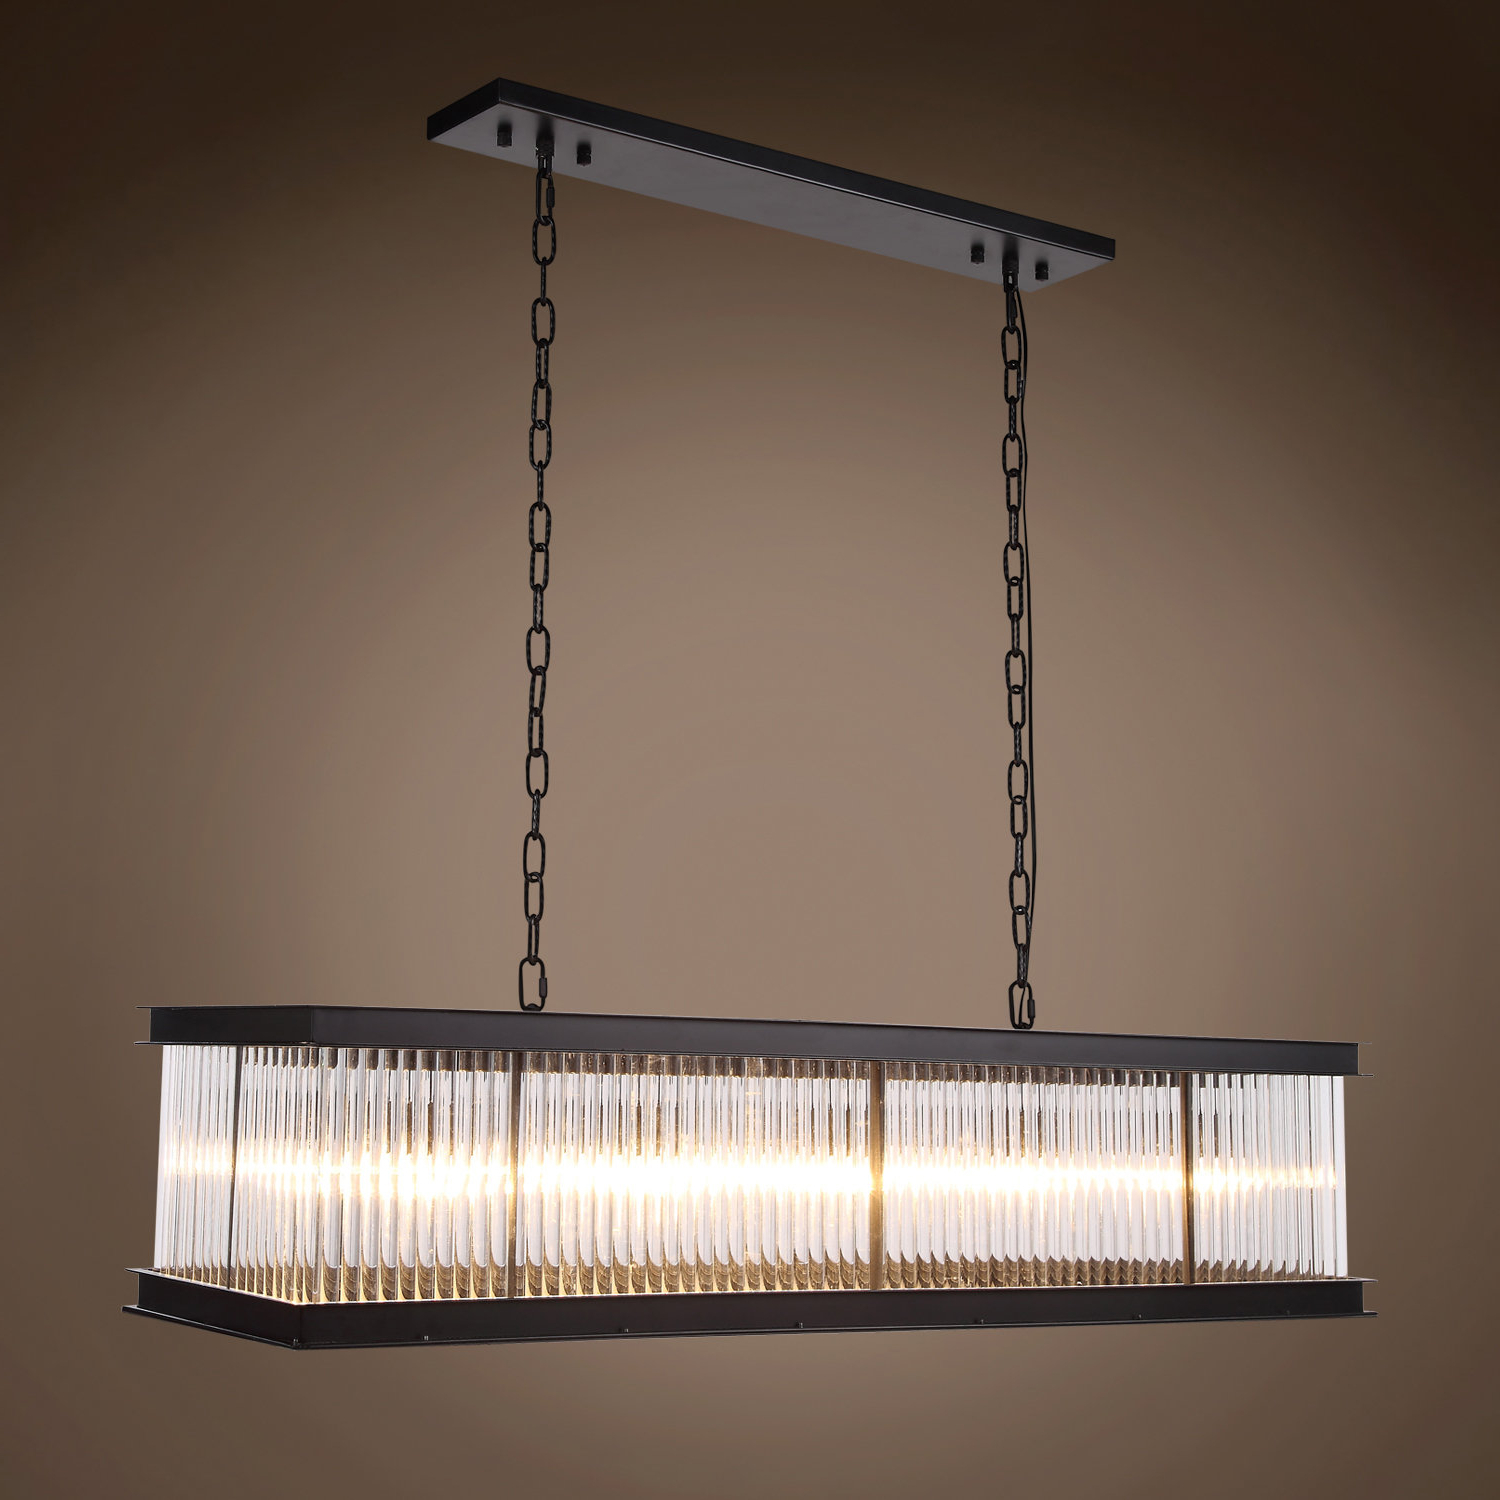 Hewitt 4 Light Square Chandeliers Within 2019 Fulghum 10 Light Square/rectangle Chandelier (View 16 of 20)